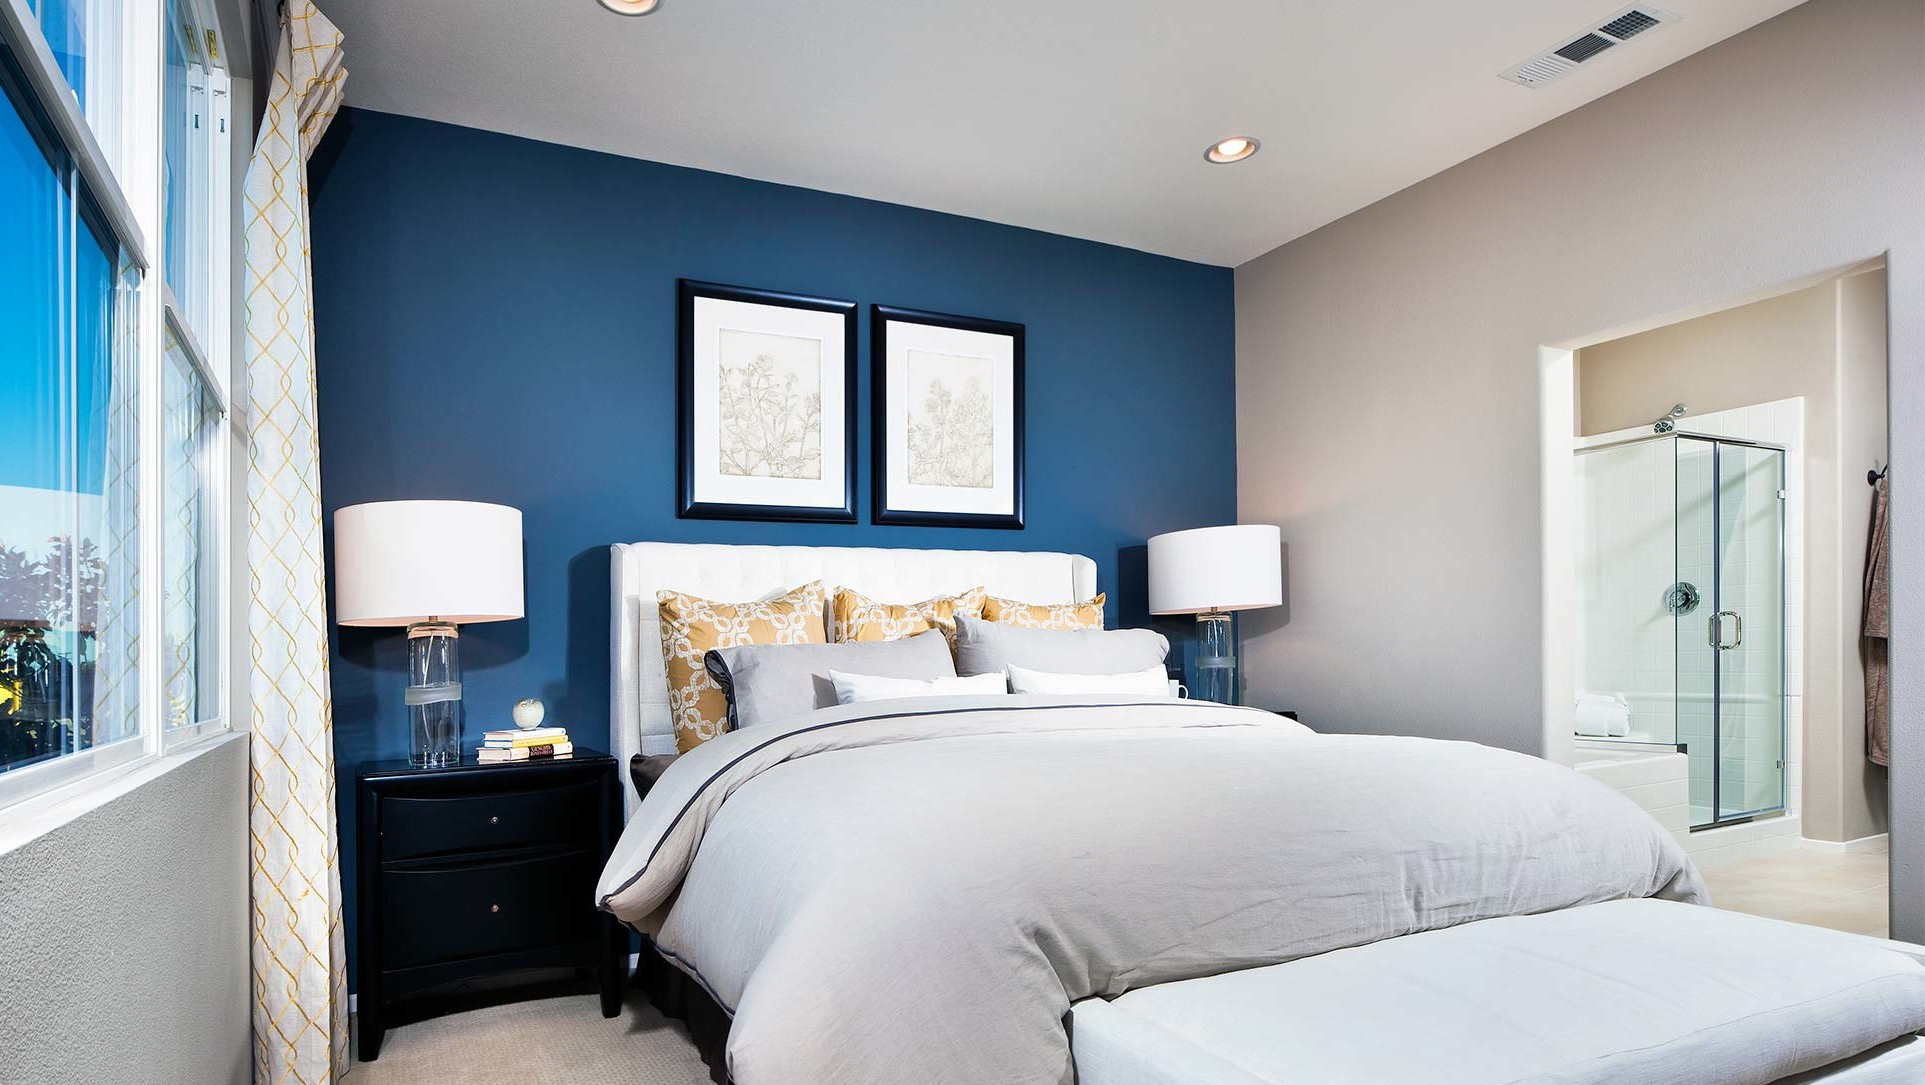 Best ideas about Painted Accent Walls . Save or Pin You re Doing It Wrong Painting an Accent Wall Now.